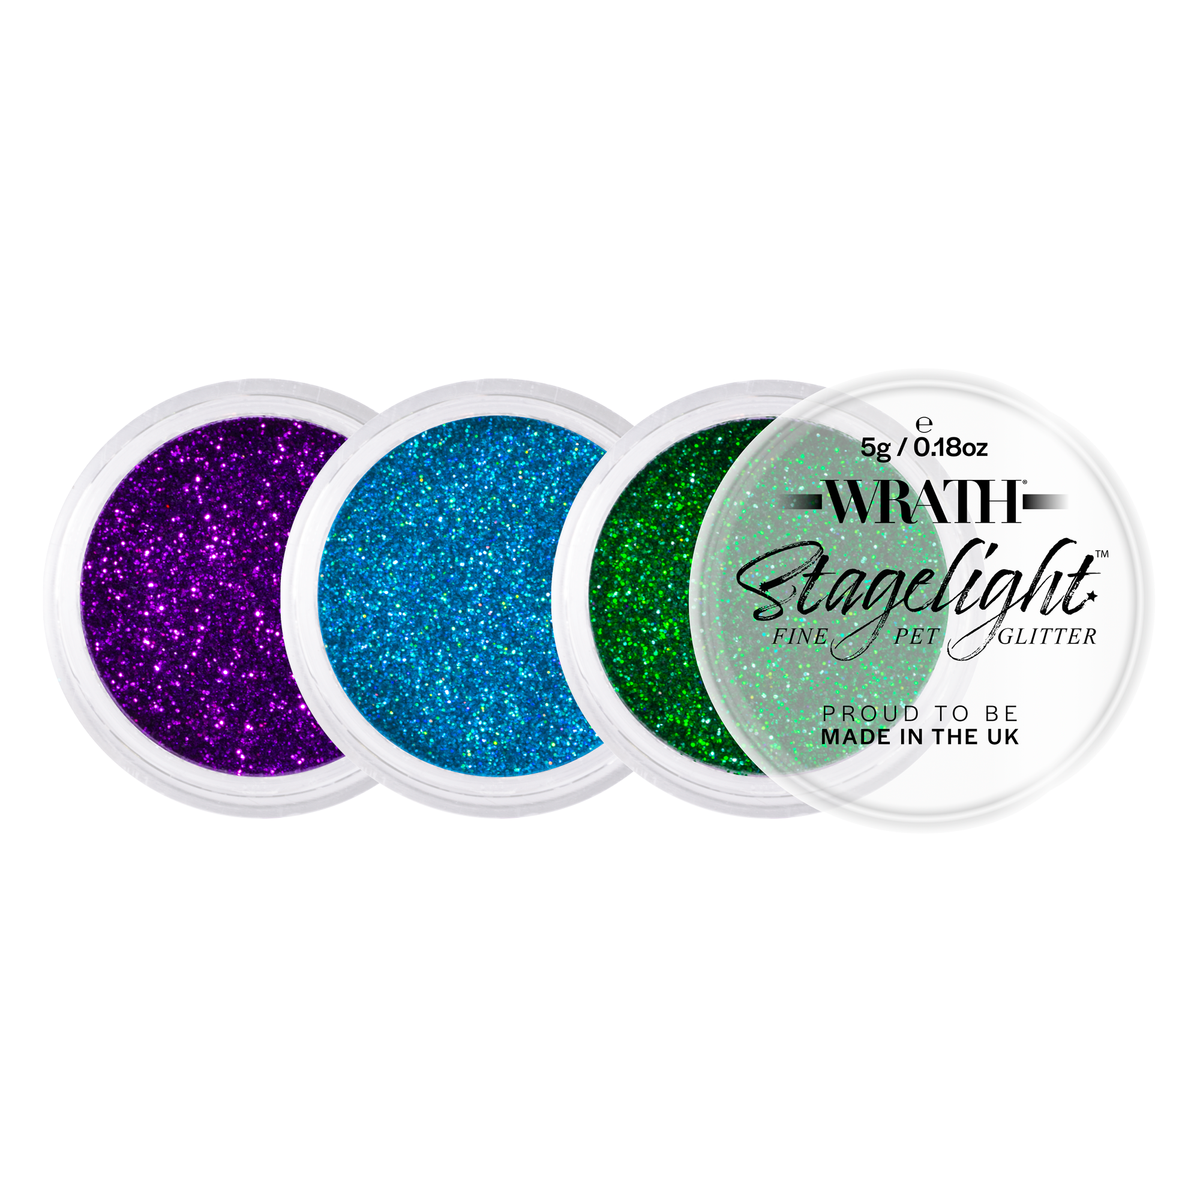 WRATH Stagelight Loose Fine Glitter - Professional Makeup - Red Carpet FX